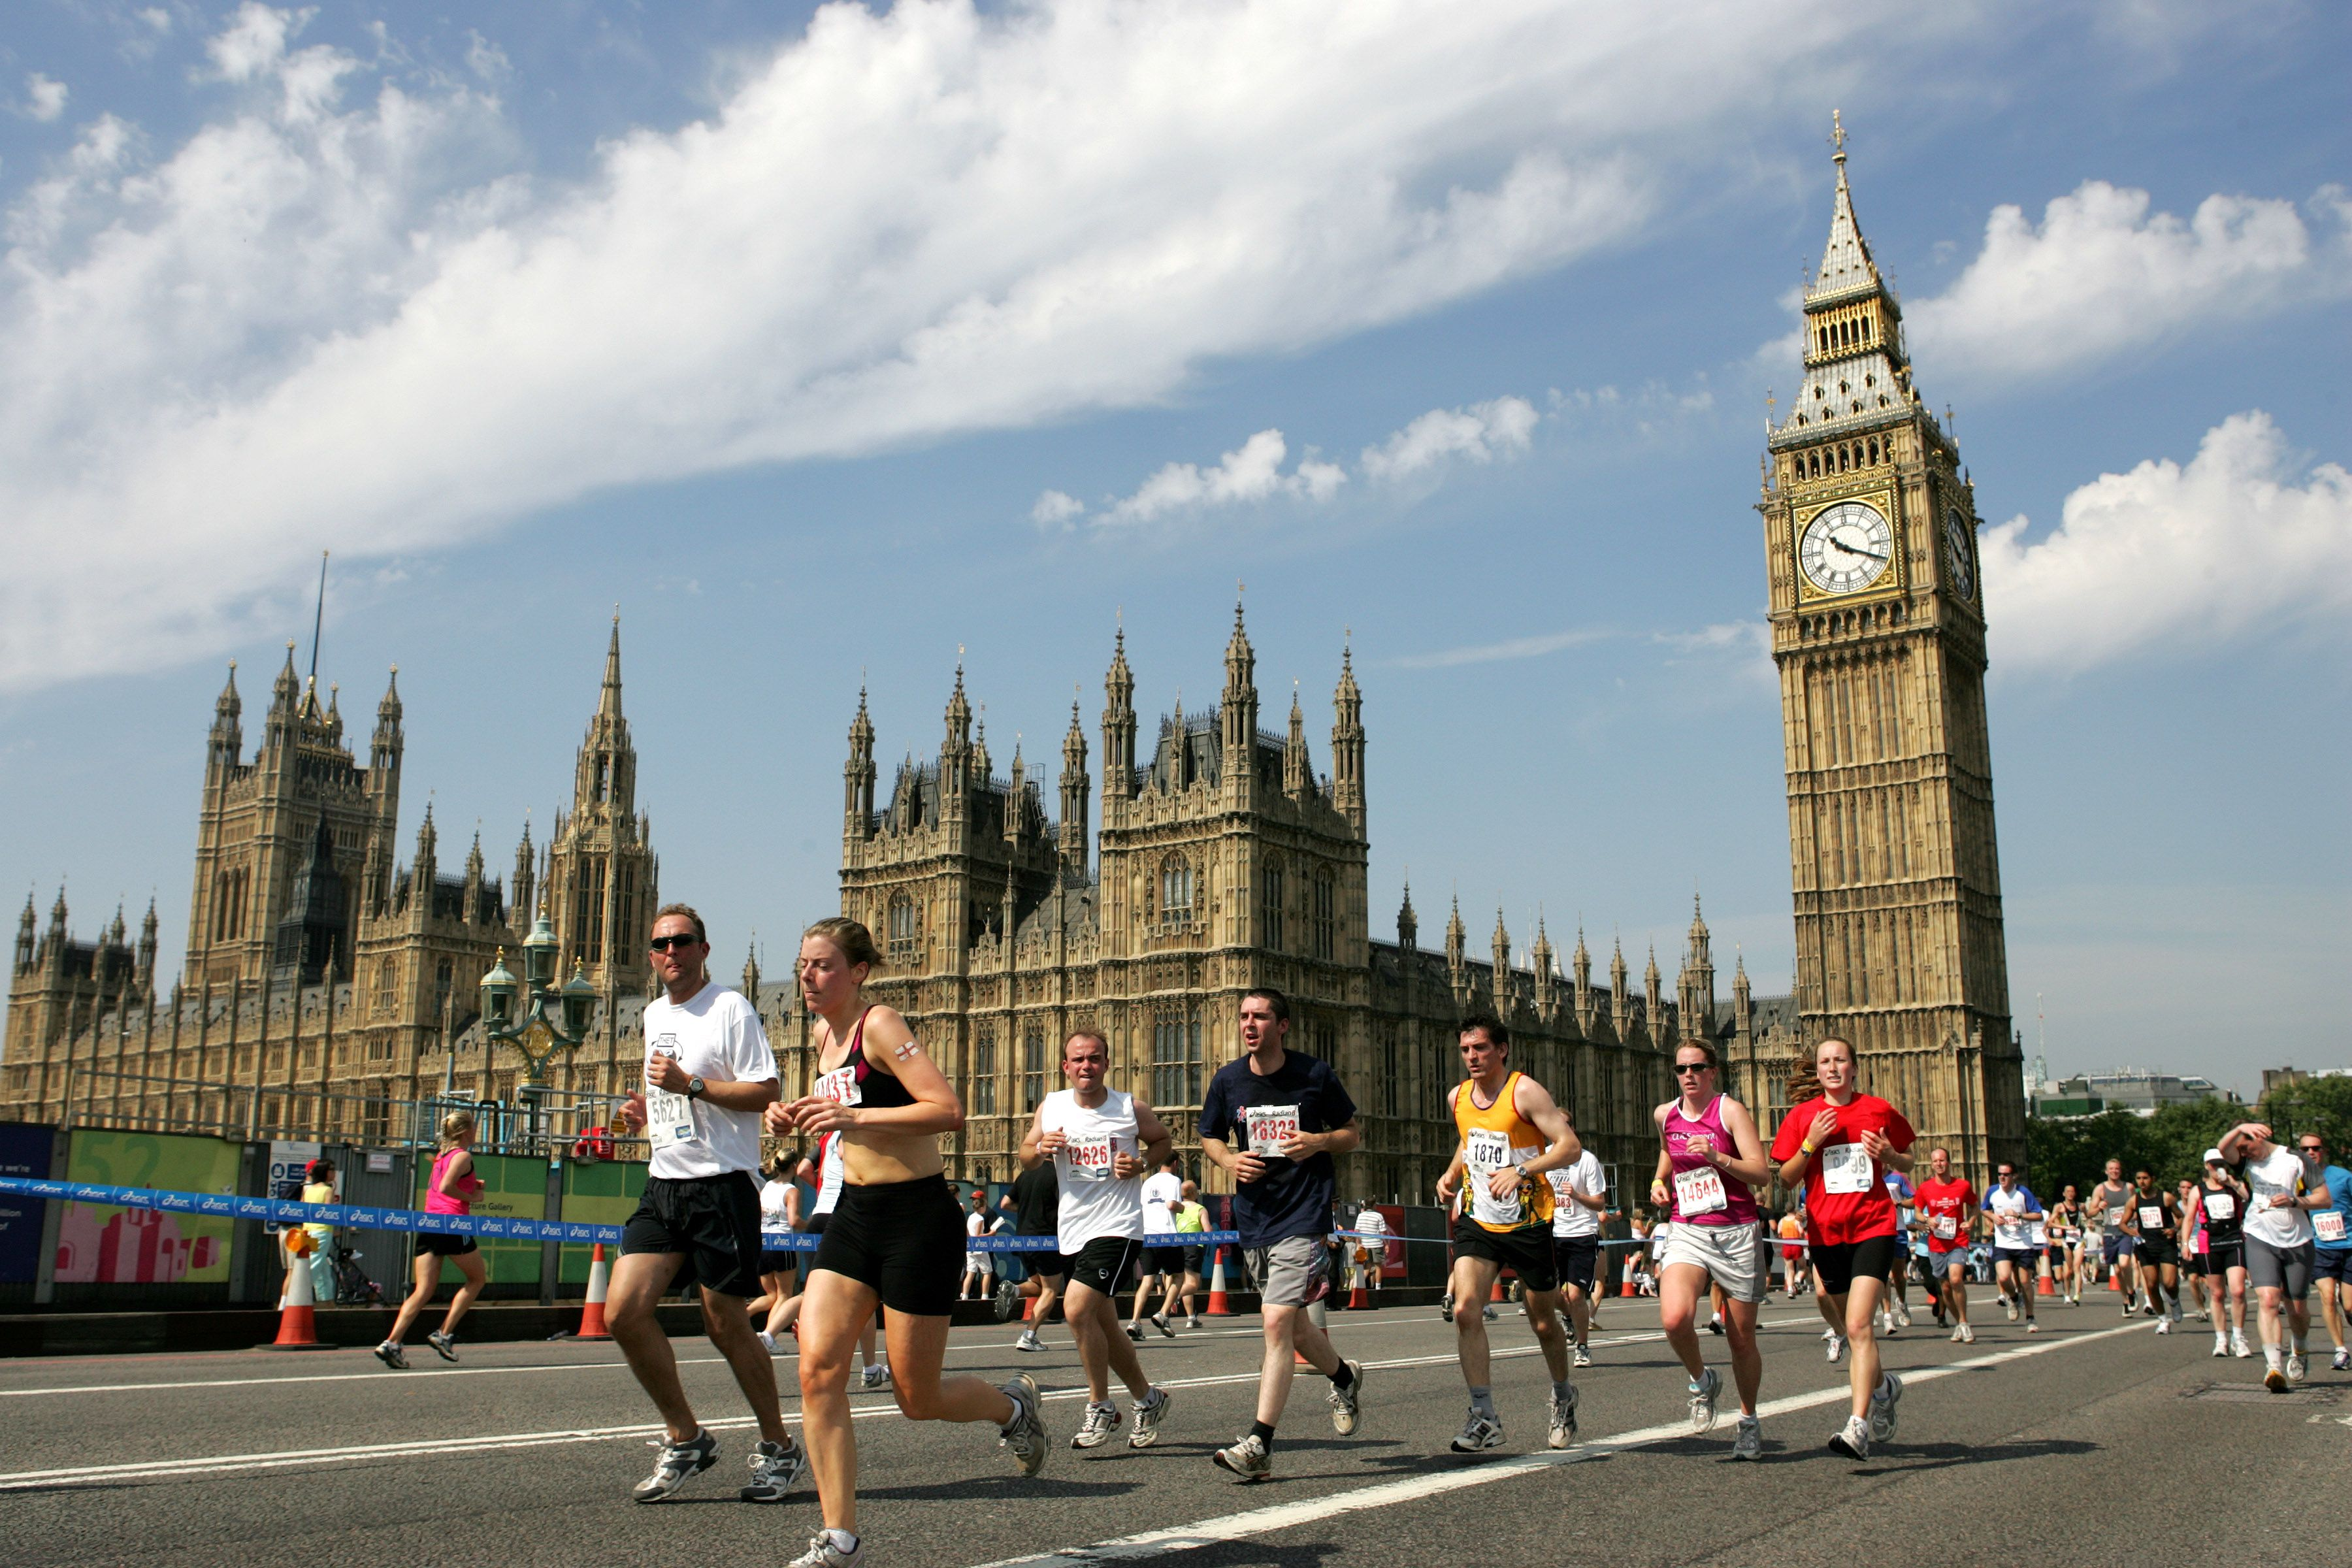 Running past big ben in the sun what could be better british k